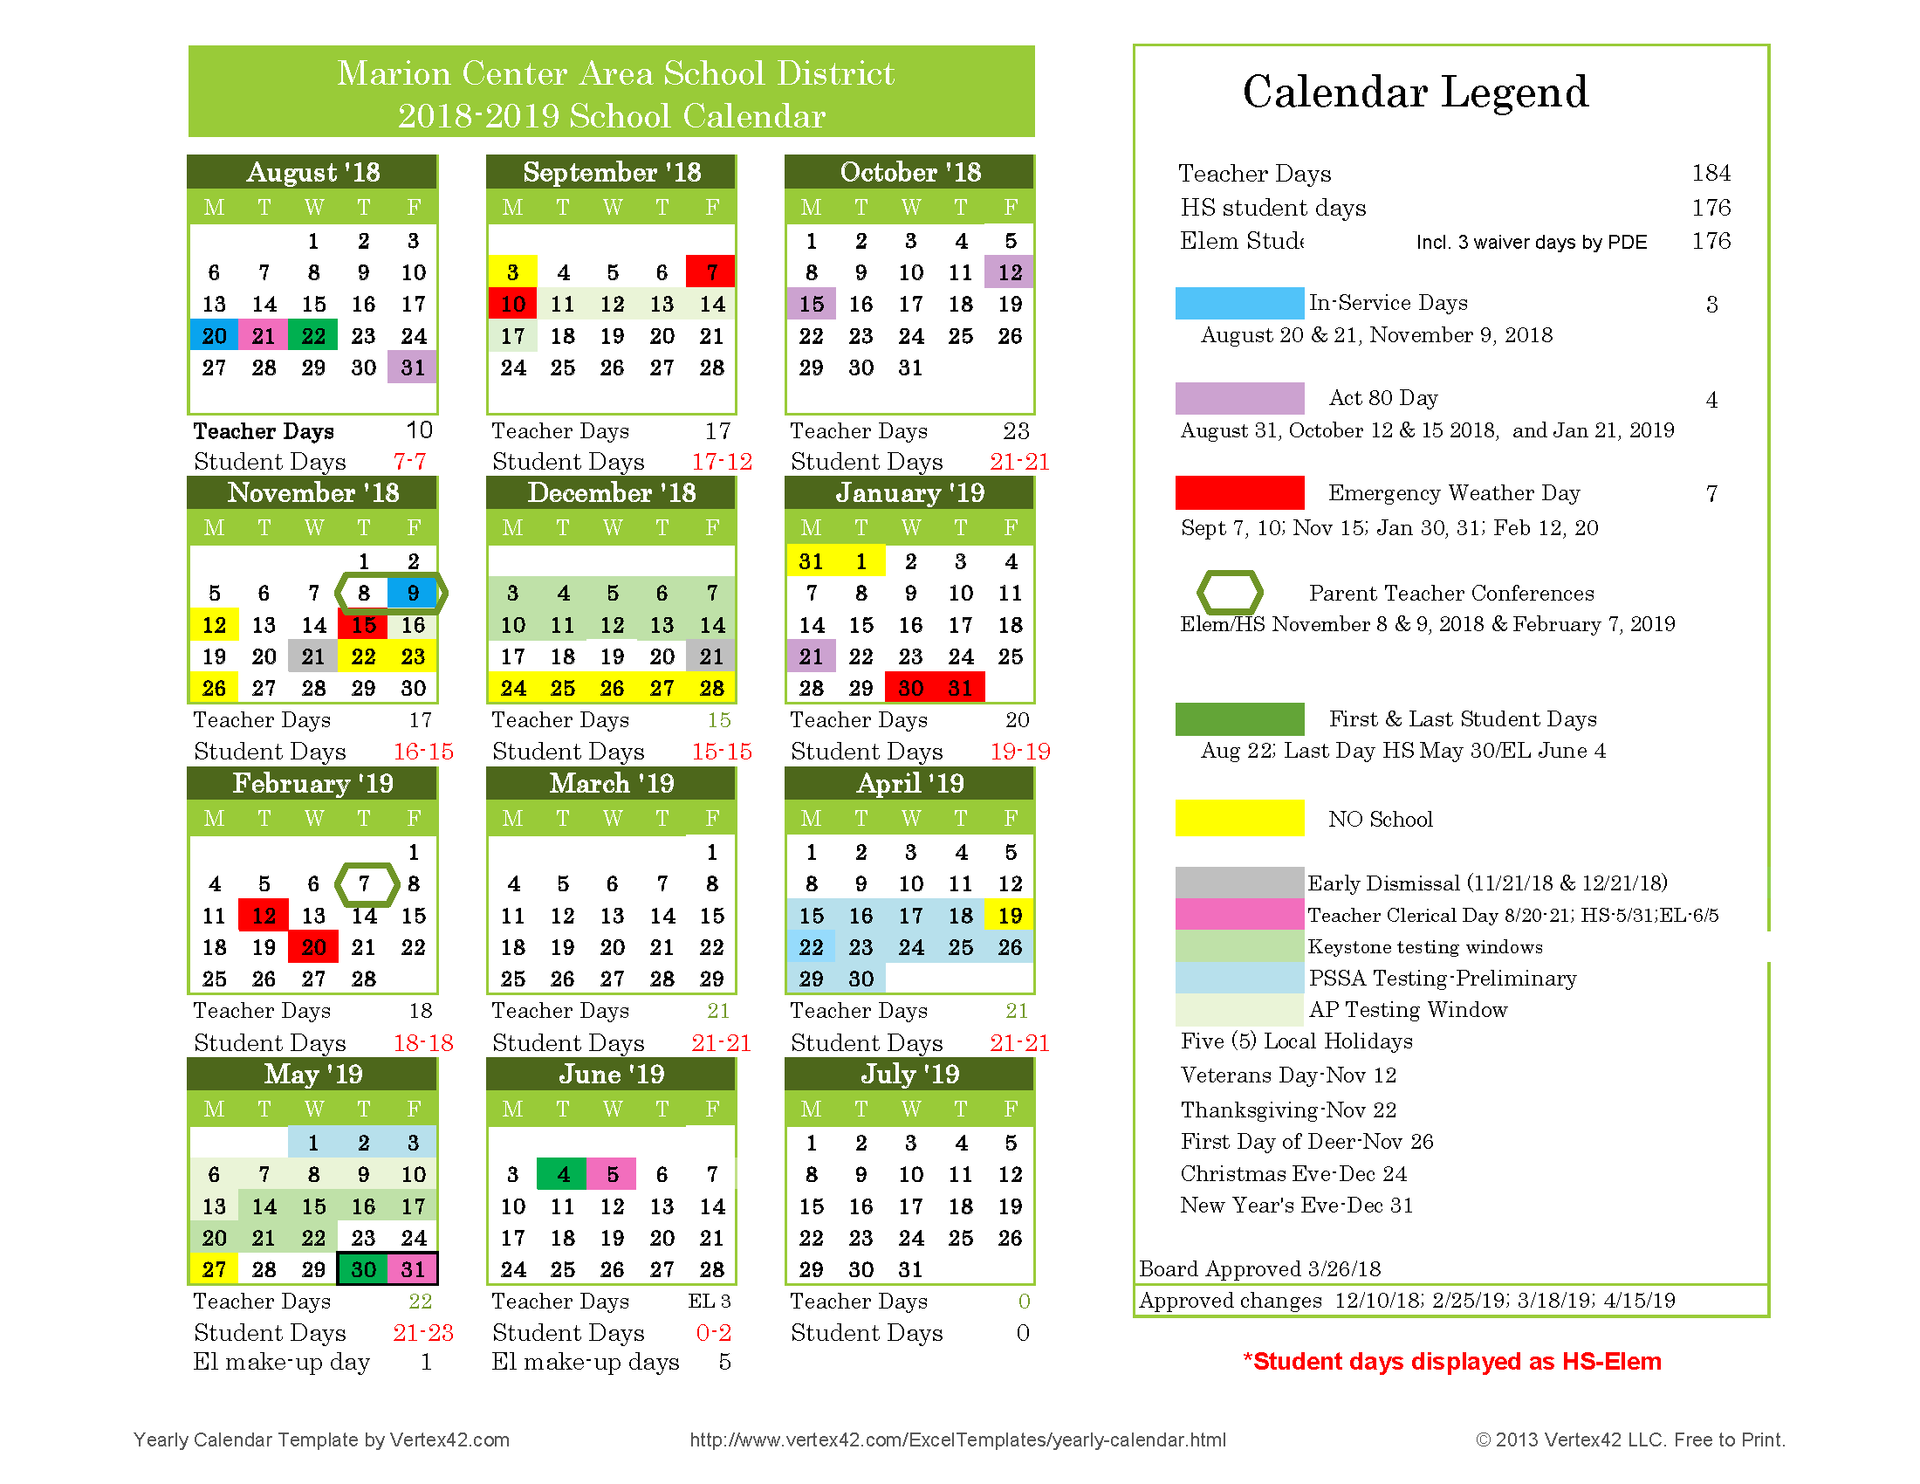 Approved 18-19 School Calendar